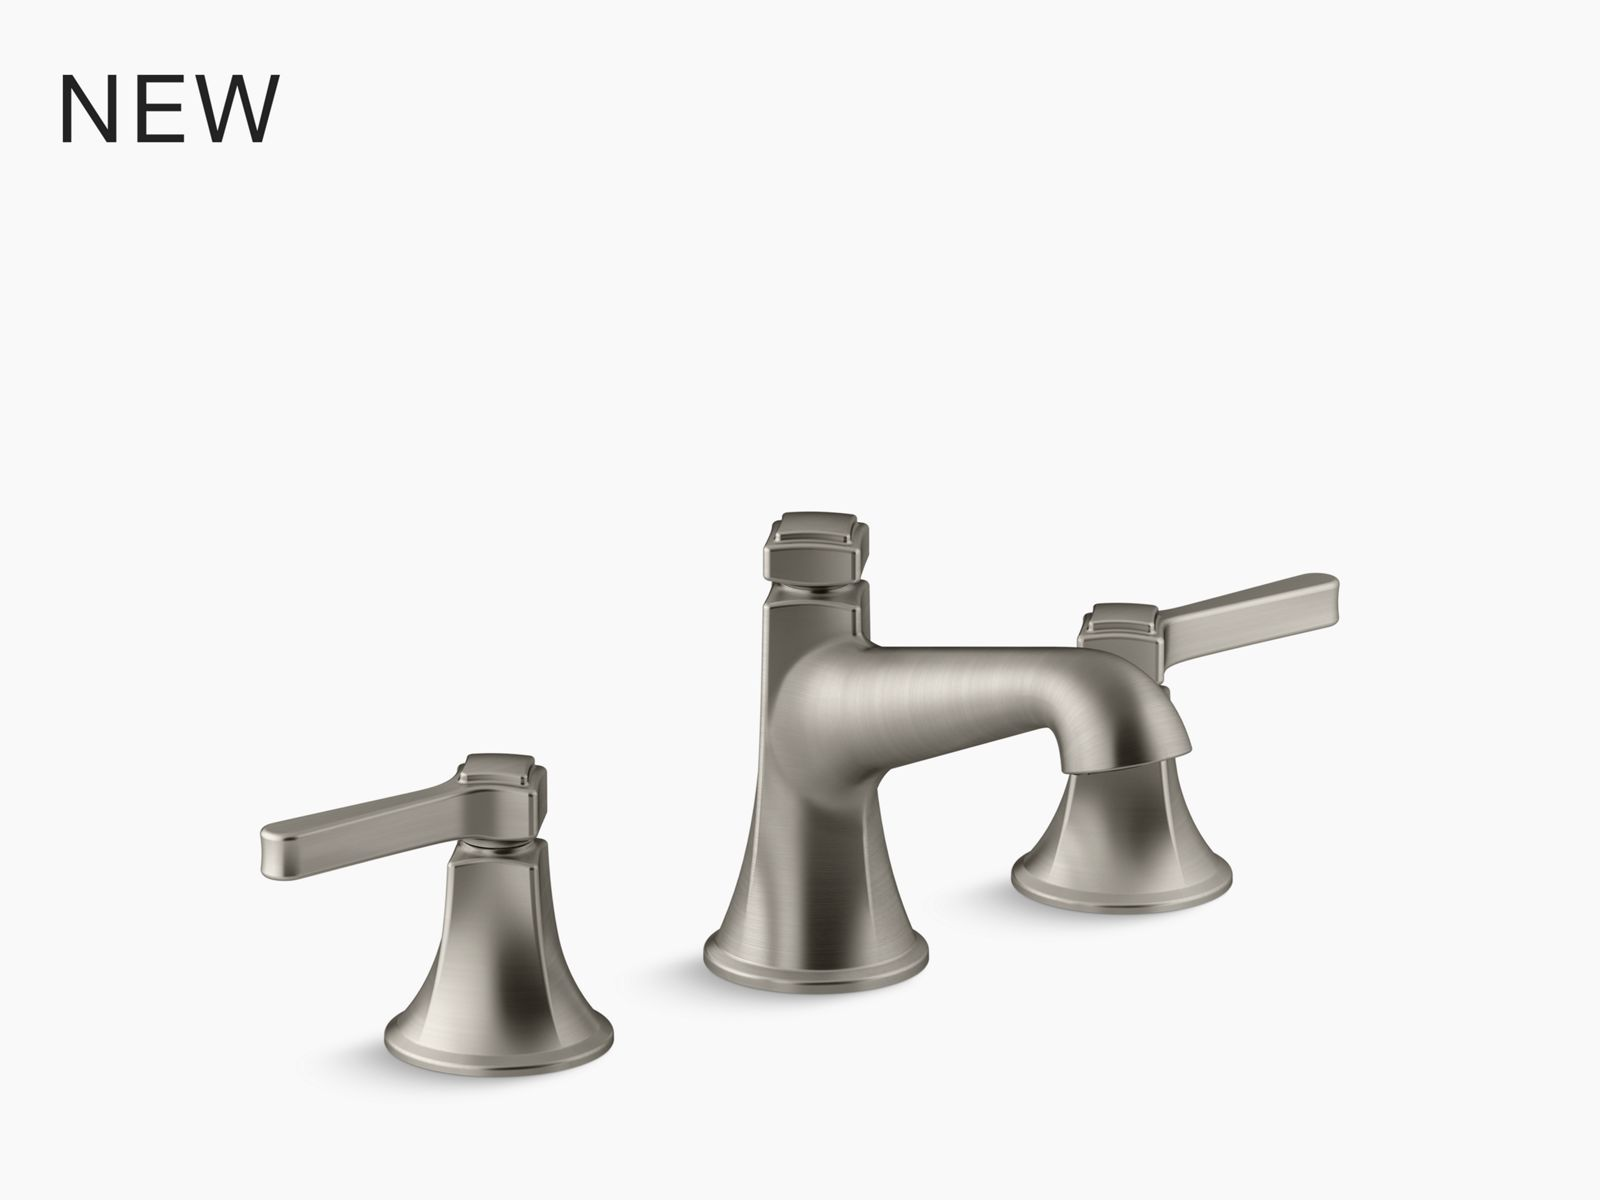 pinstripe widespread bathroom sink faucet with lever handles